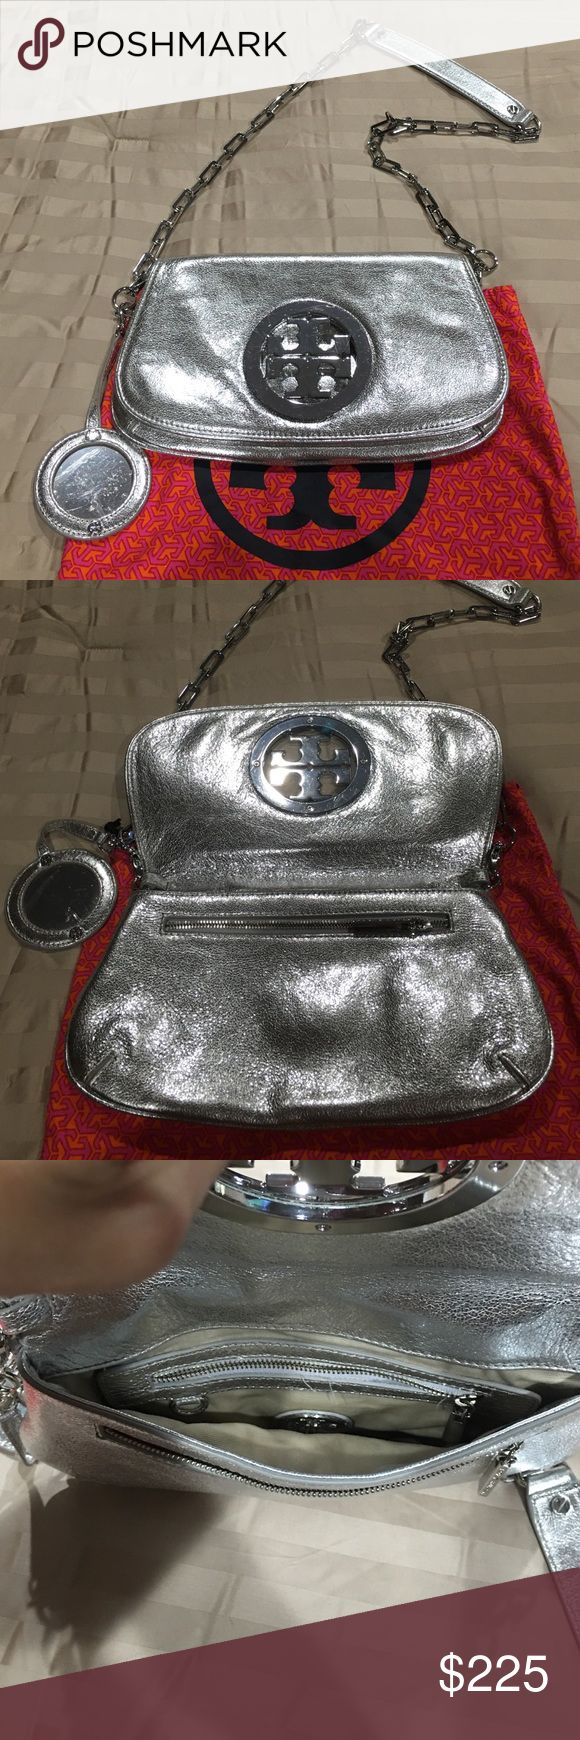 Tory Burch Silver shoulder bag 100% authentic Tory Burch Silver shoulder bag almost brand-new come with a little mirror Tory Burch Bags Shoulder Bags